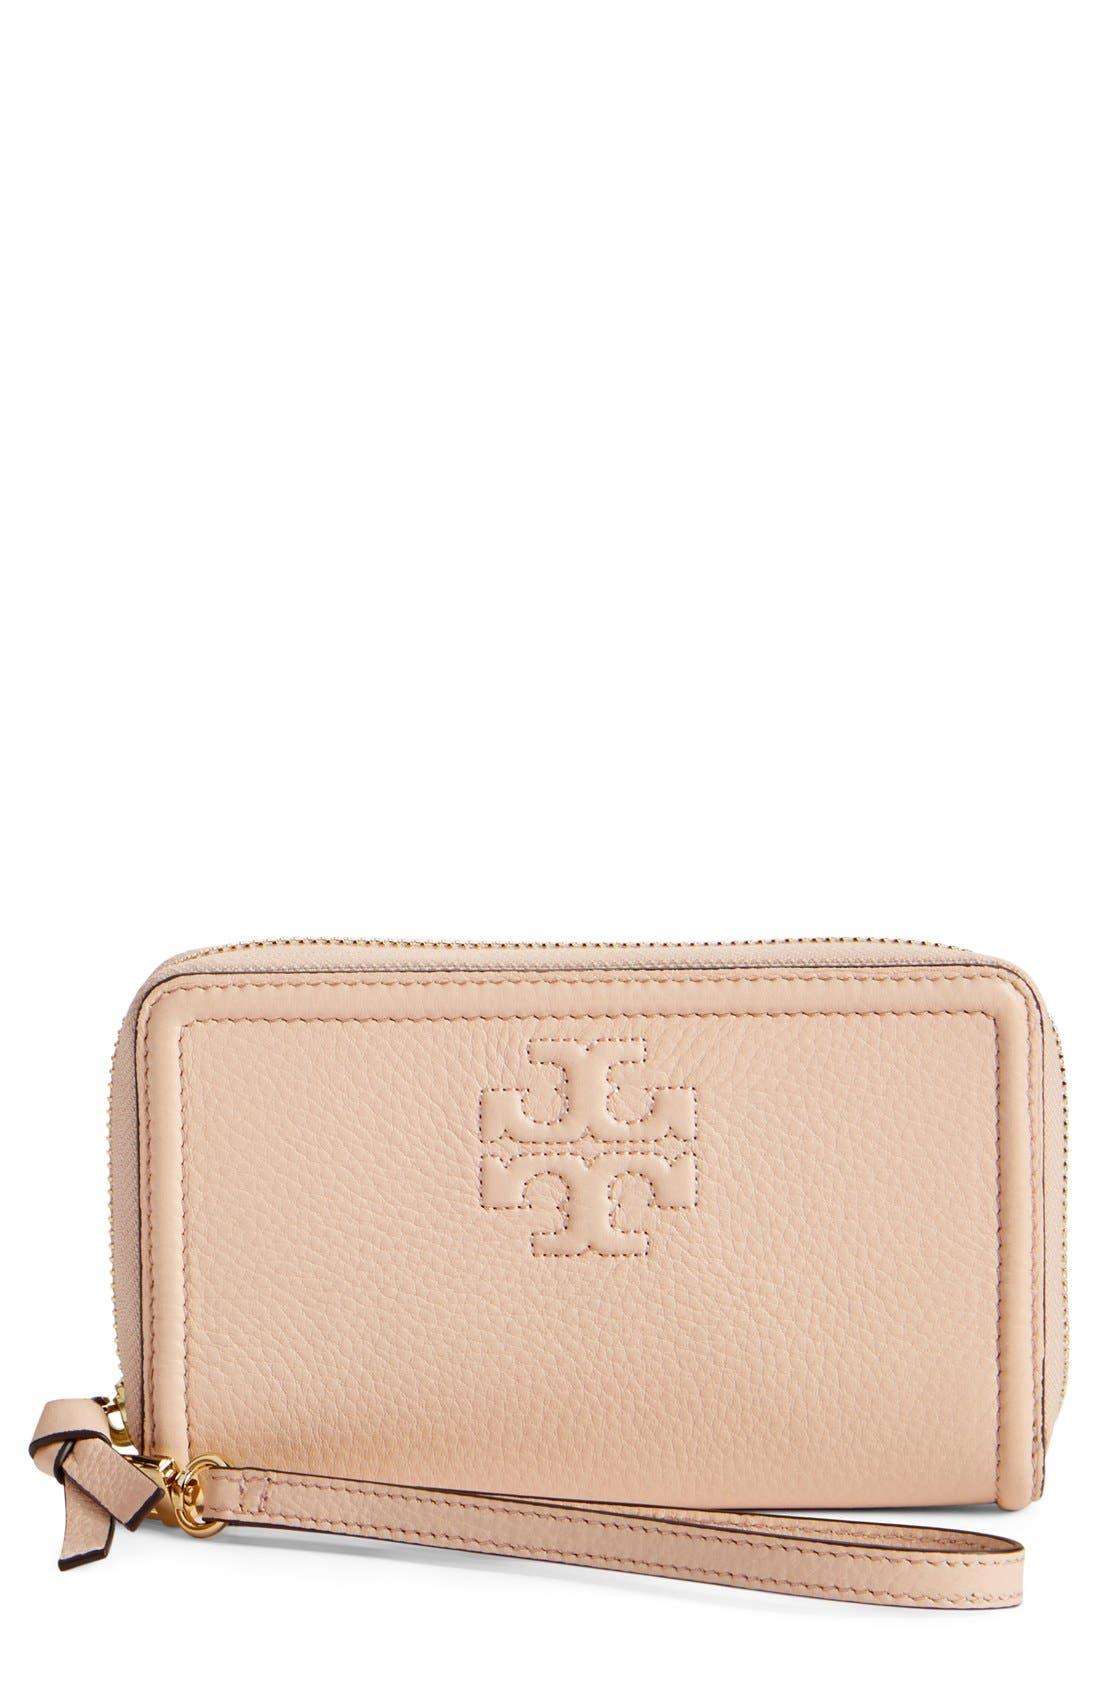 Main Image - Tory Burch 'Thea' Leather Wristlet